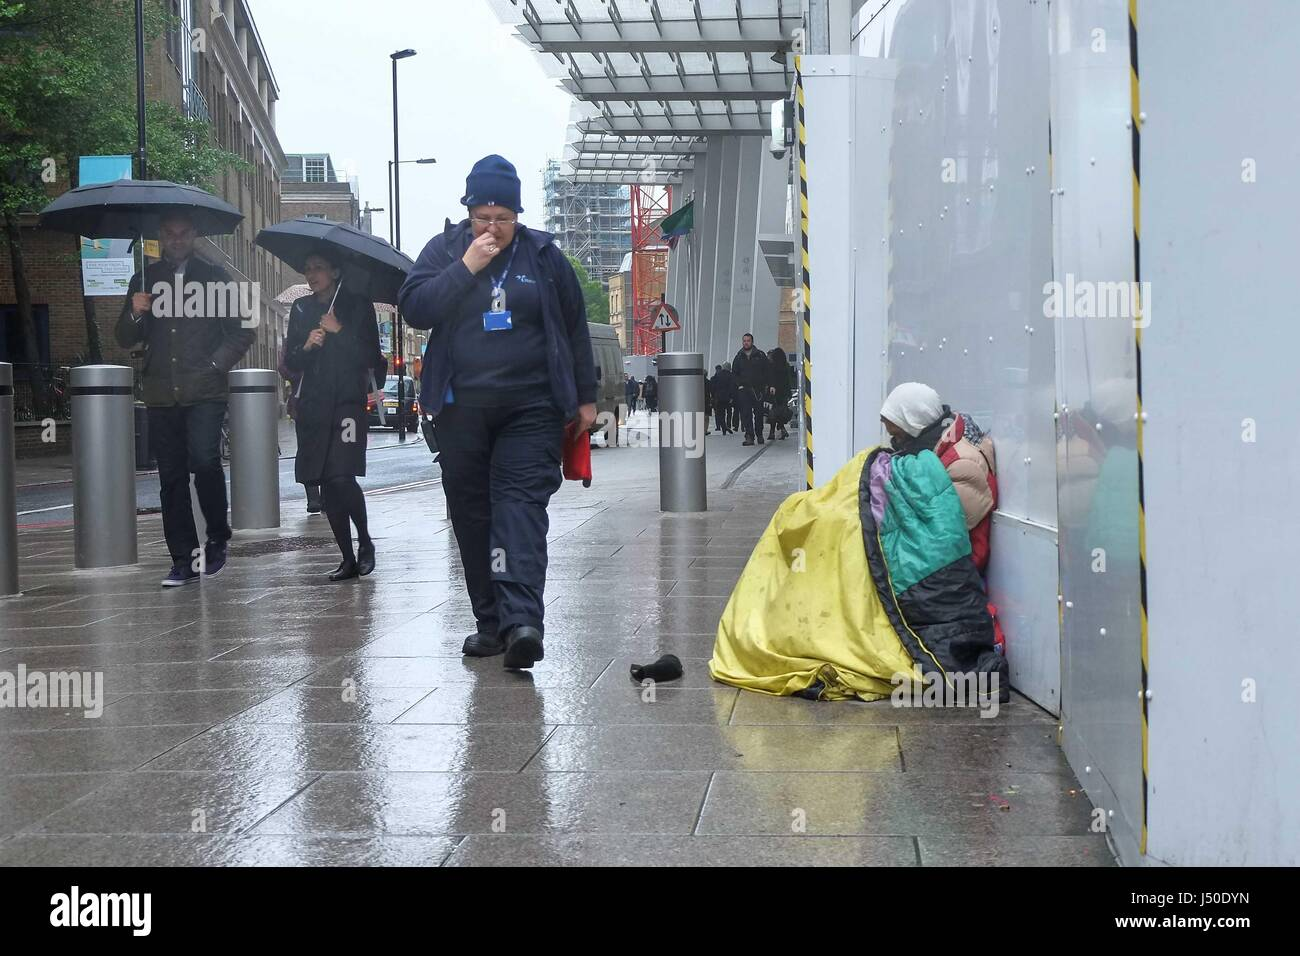 London, UK. 15th May, 2017. Homeless man next to The Shard at London Bridge station. :Credit claire doherty Alamy/Live Stock Photo